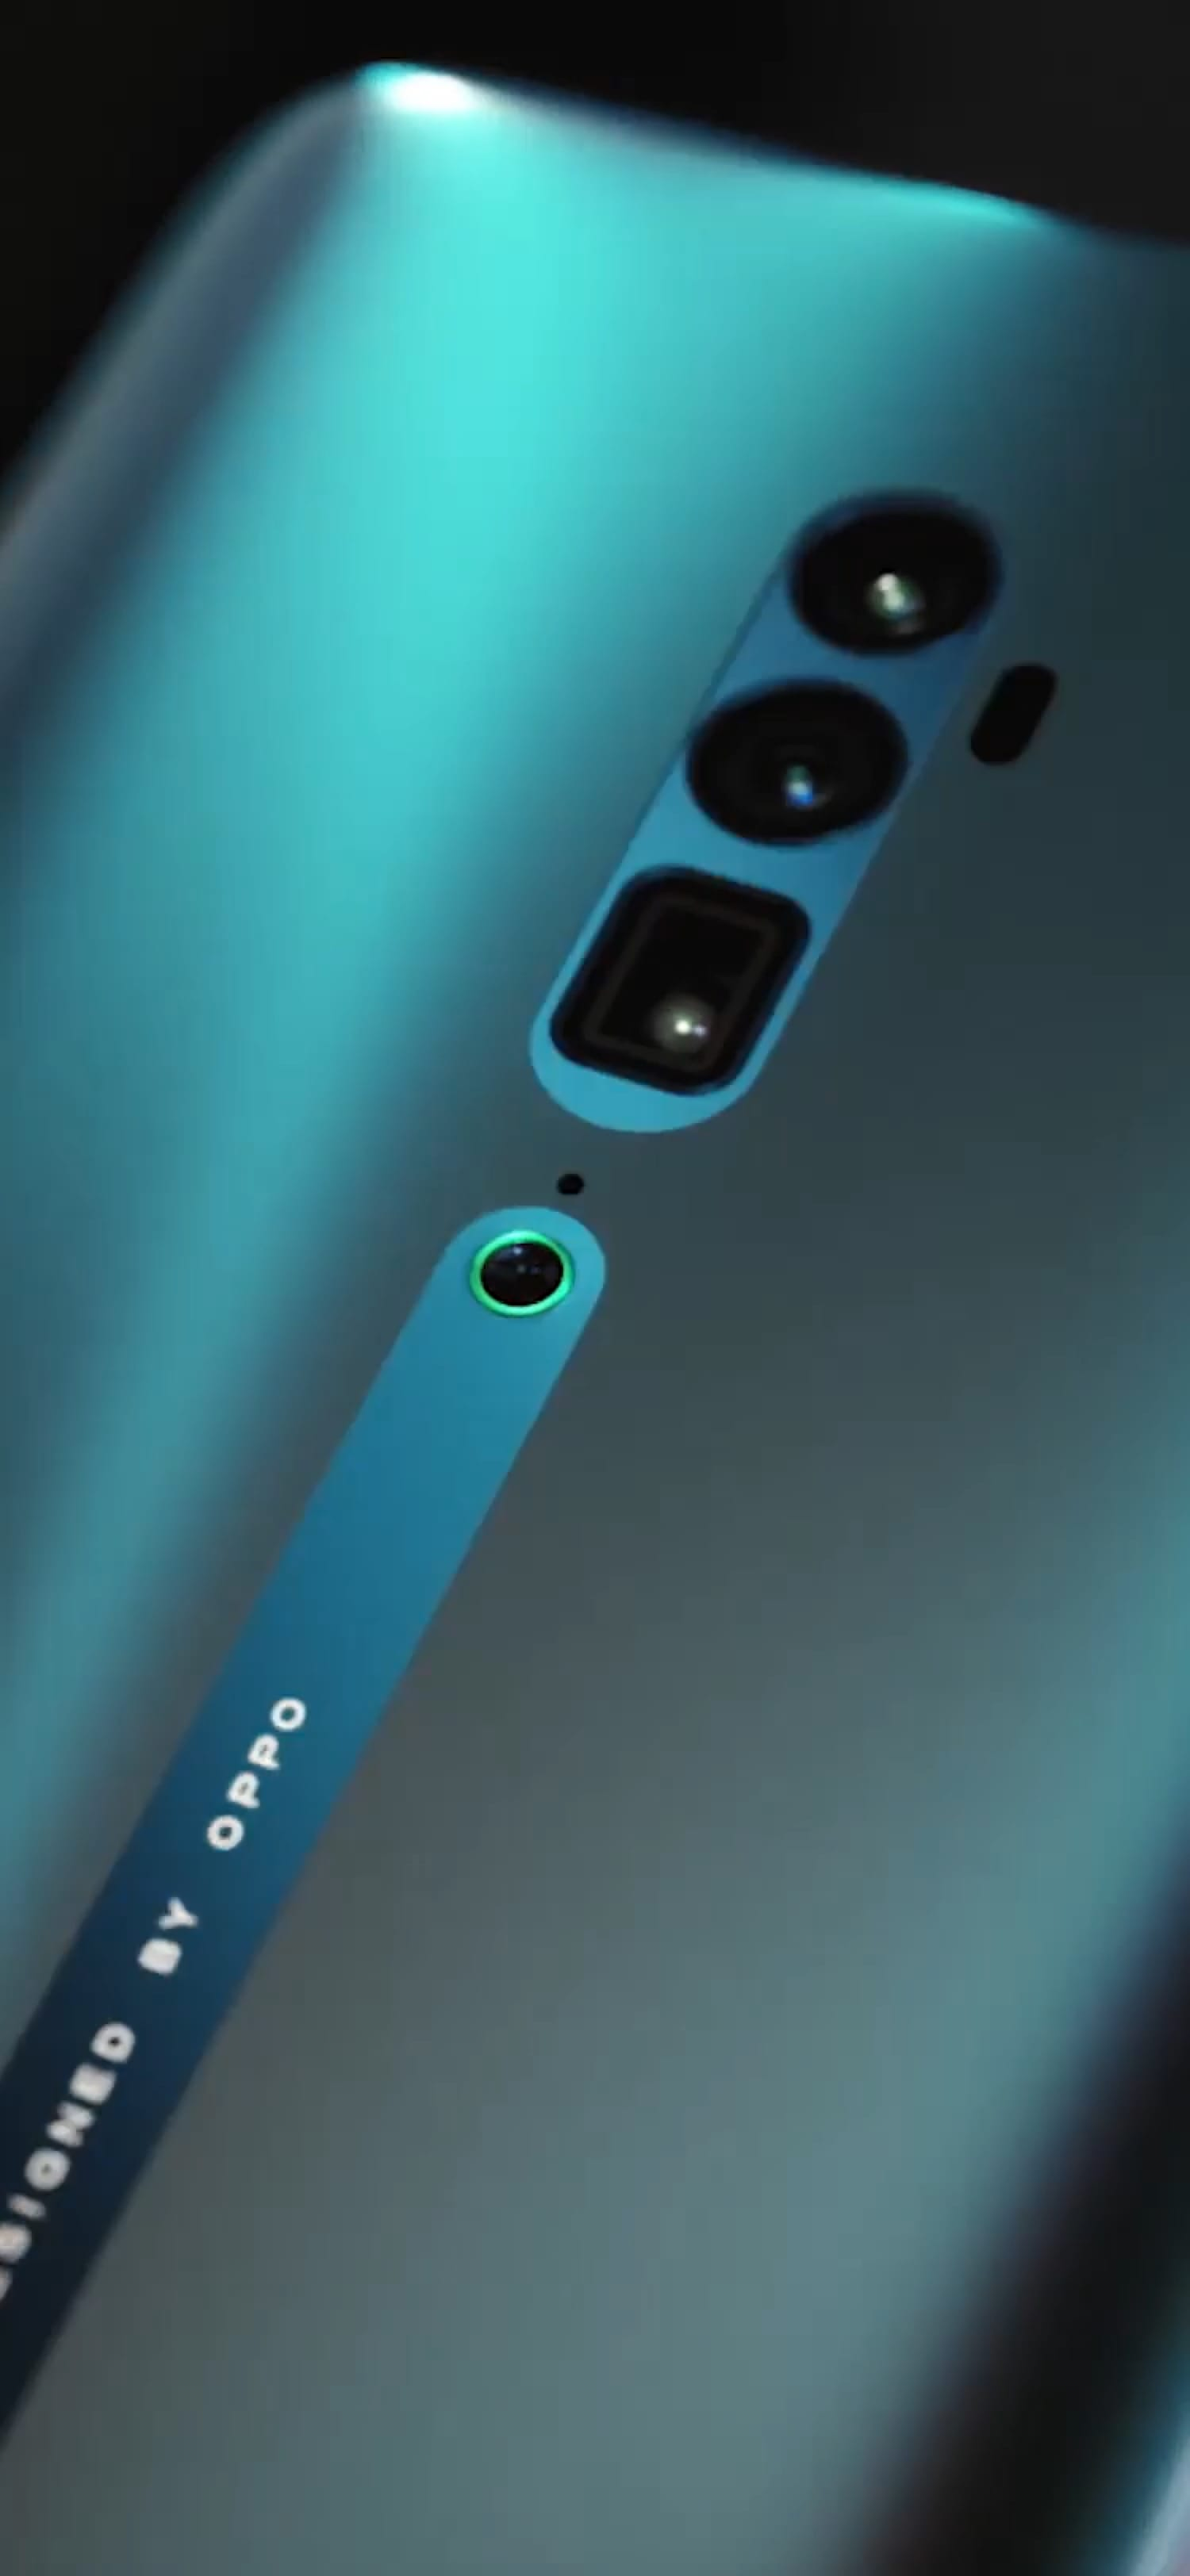 OPPO Reno 10x Zoom - Further Your Vision | OPPO Global